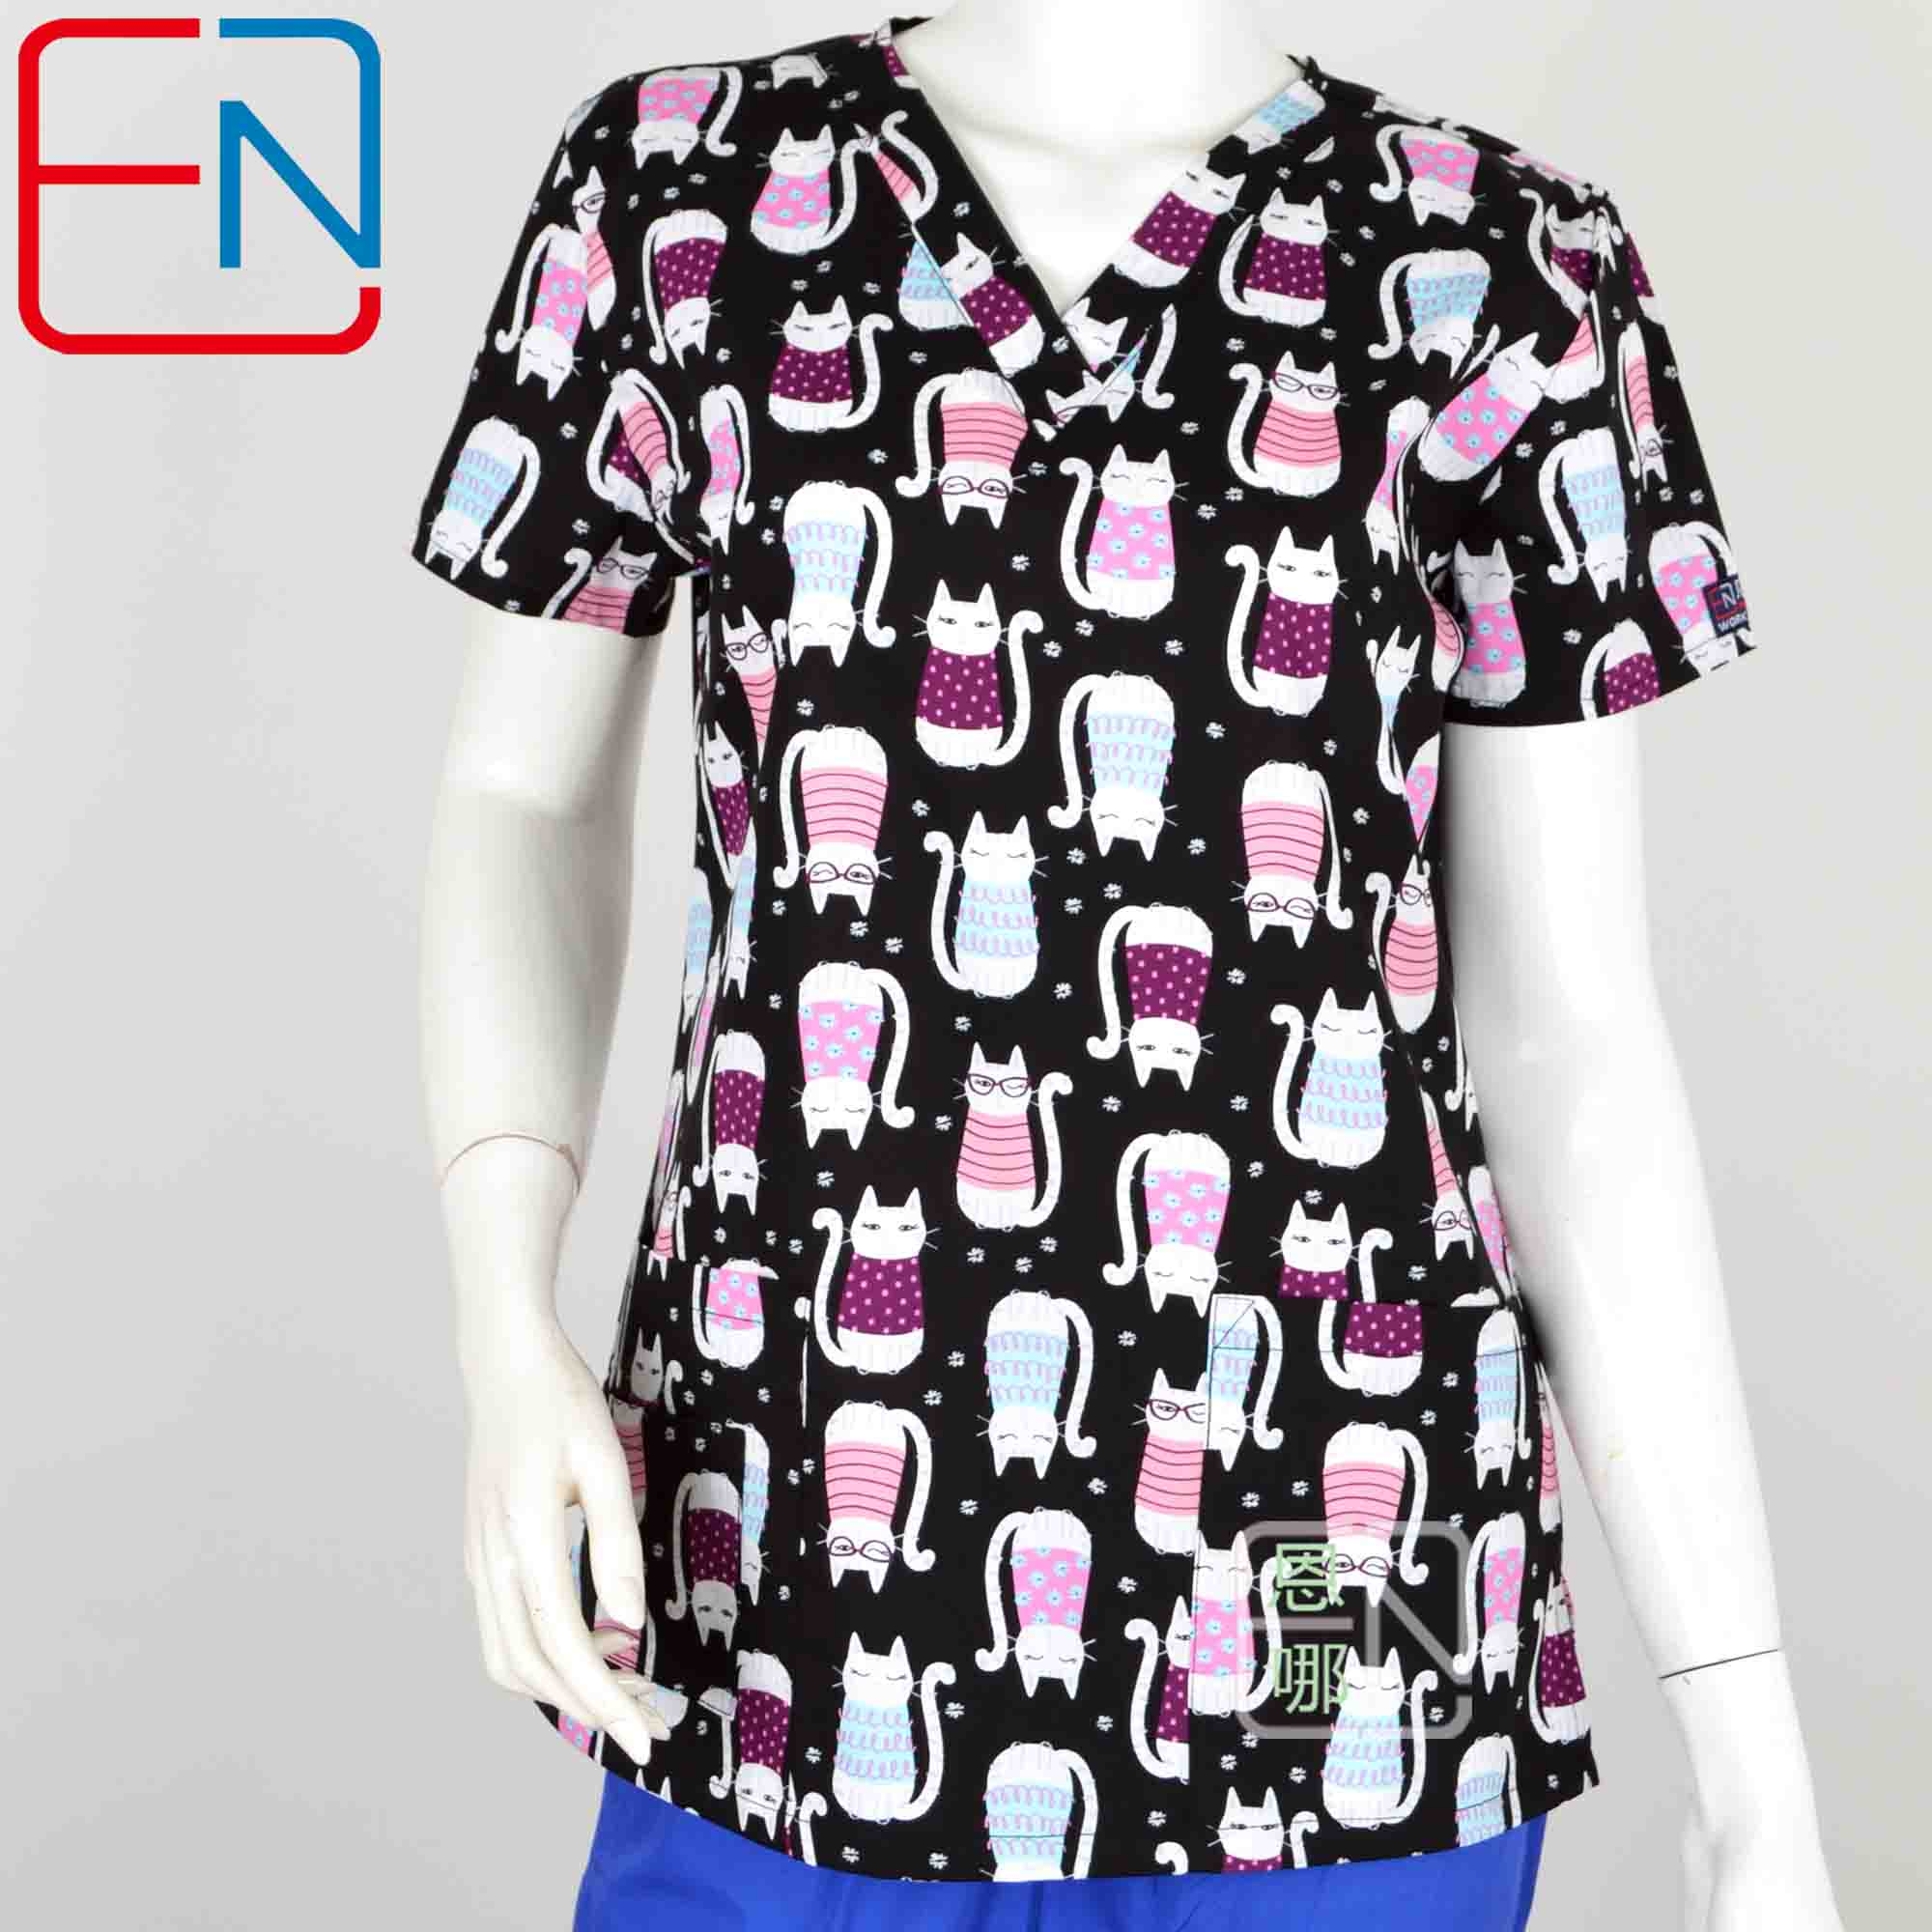 Women Scrub Top M Clearance